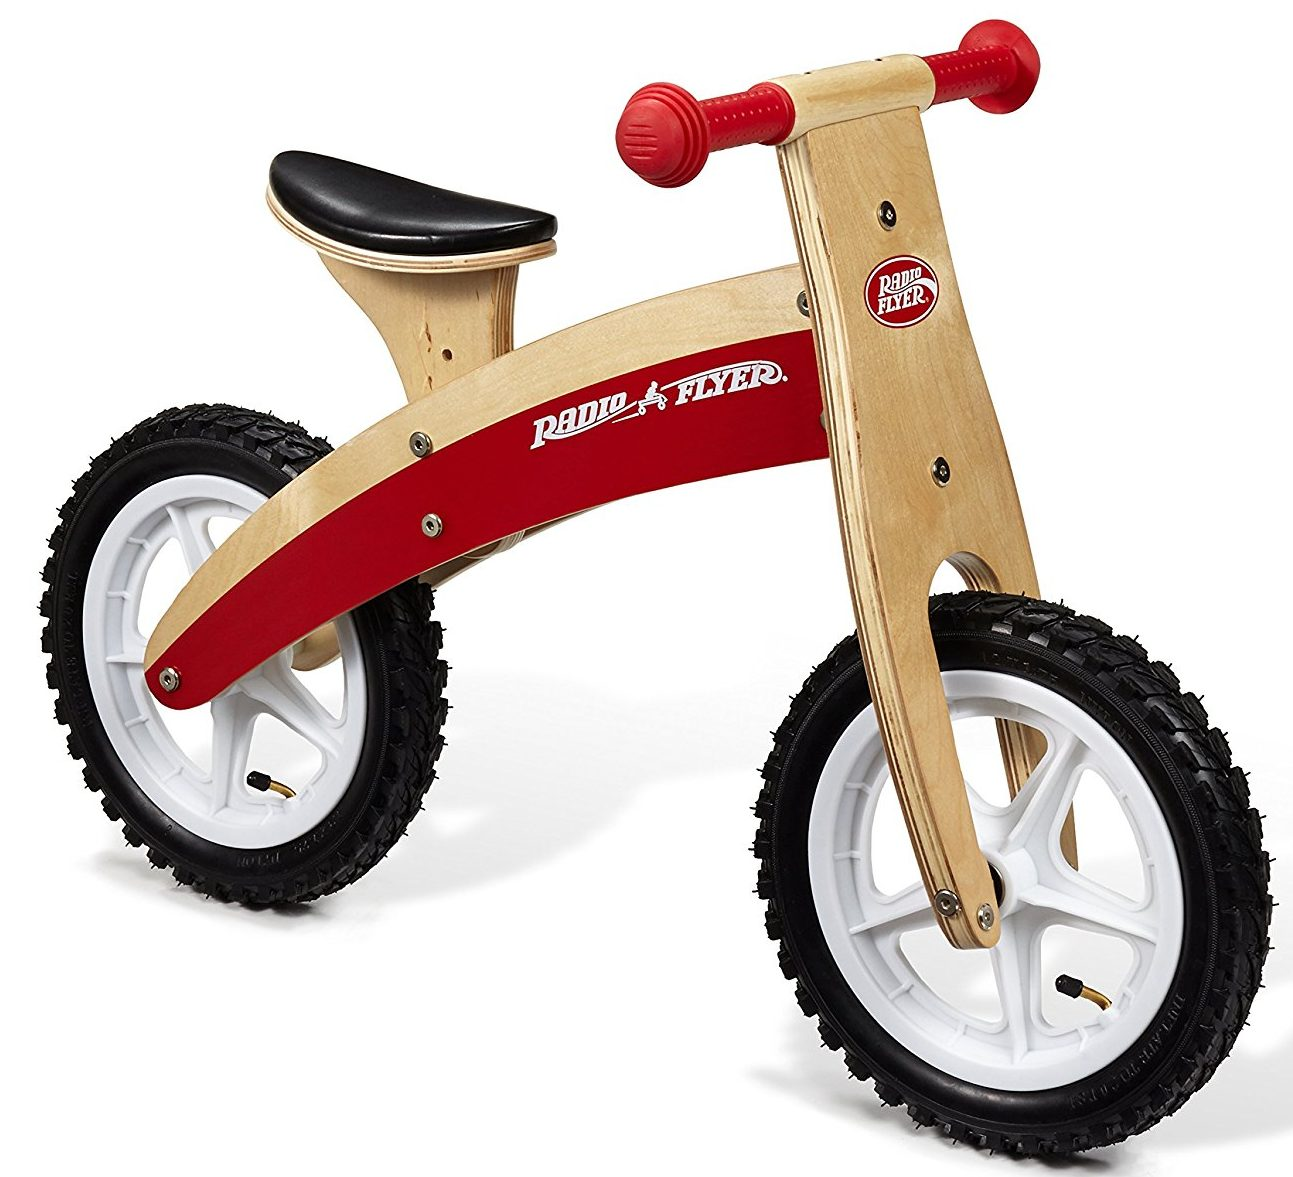 Top 10 Best Balance Bikes in 2020